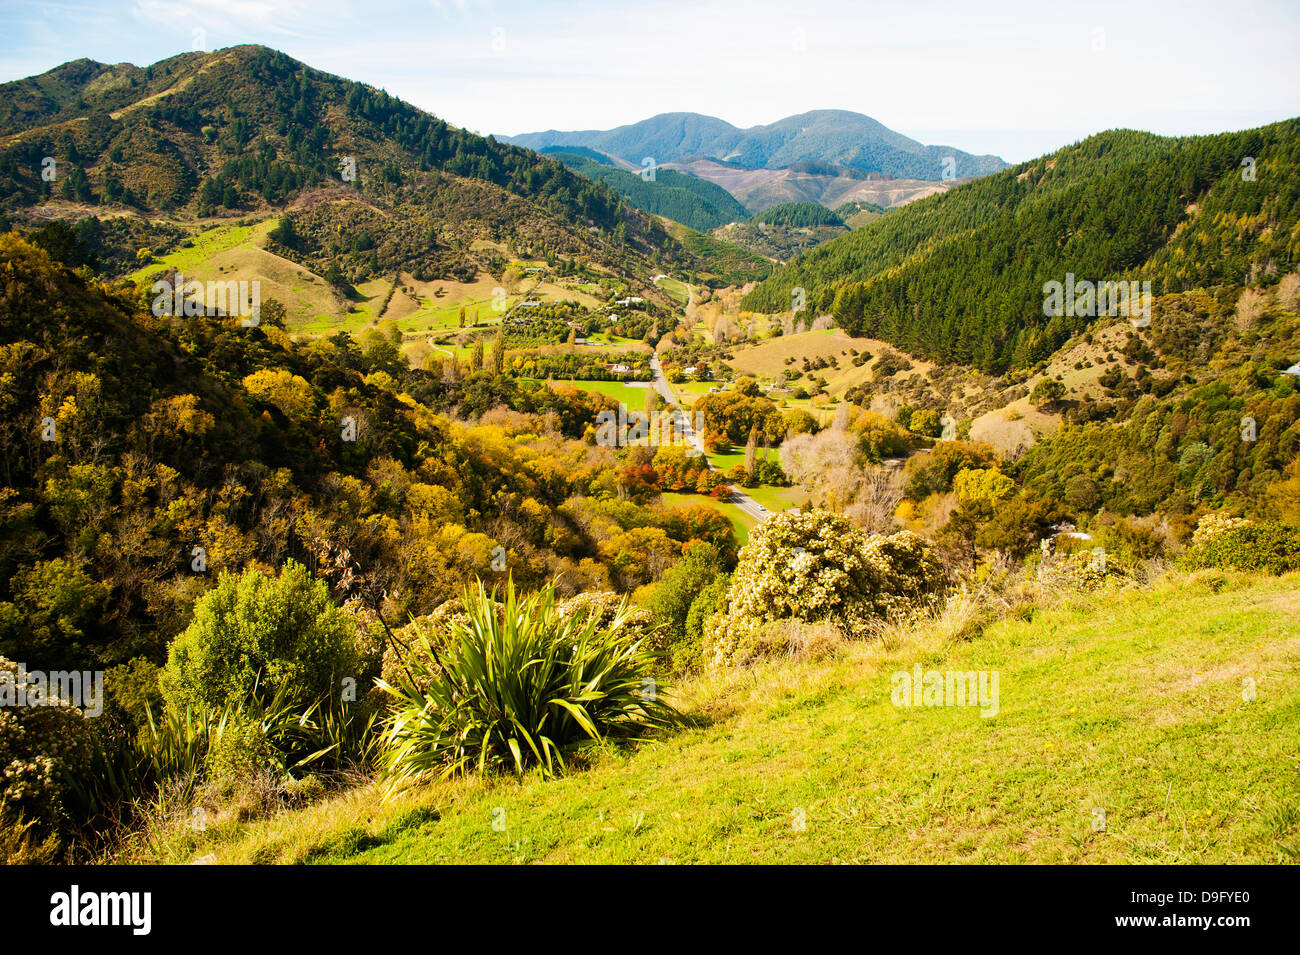 Landscape taken from the centre of New Zealand, Nelson Hill, Nelson, South Island, New Zealand - Stock Image